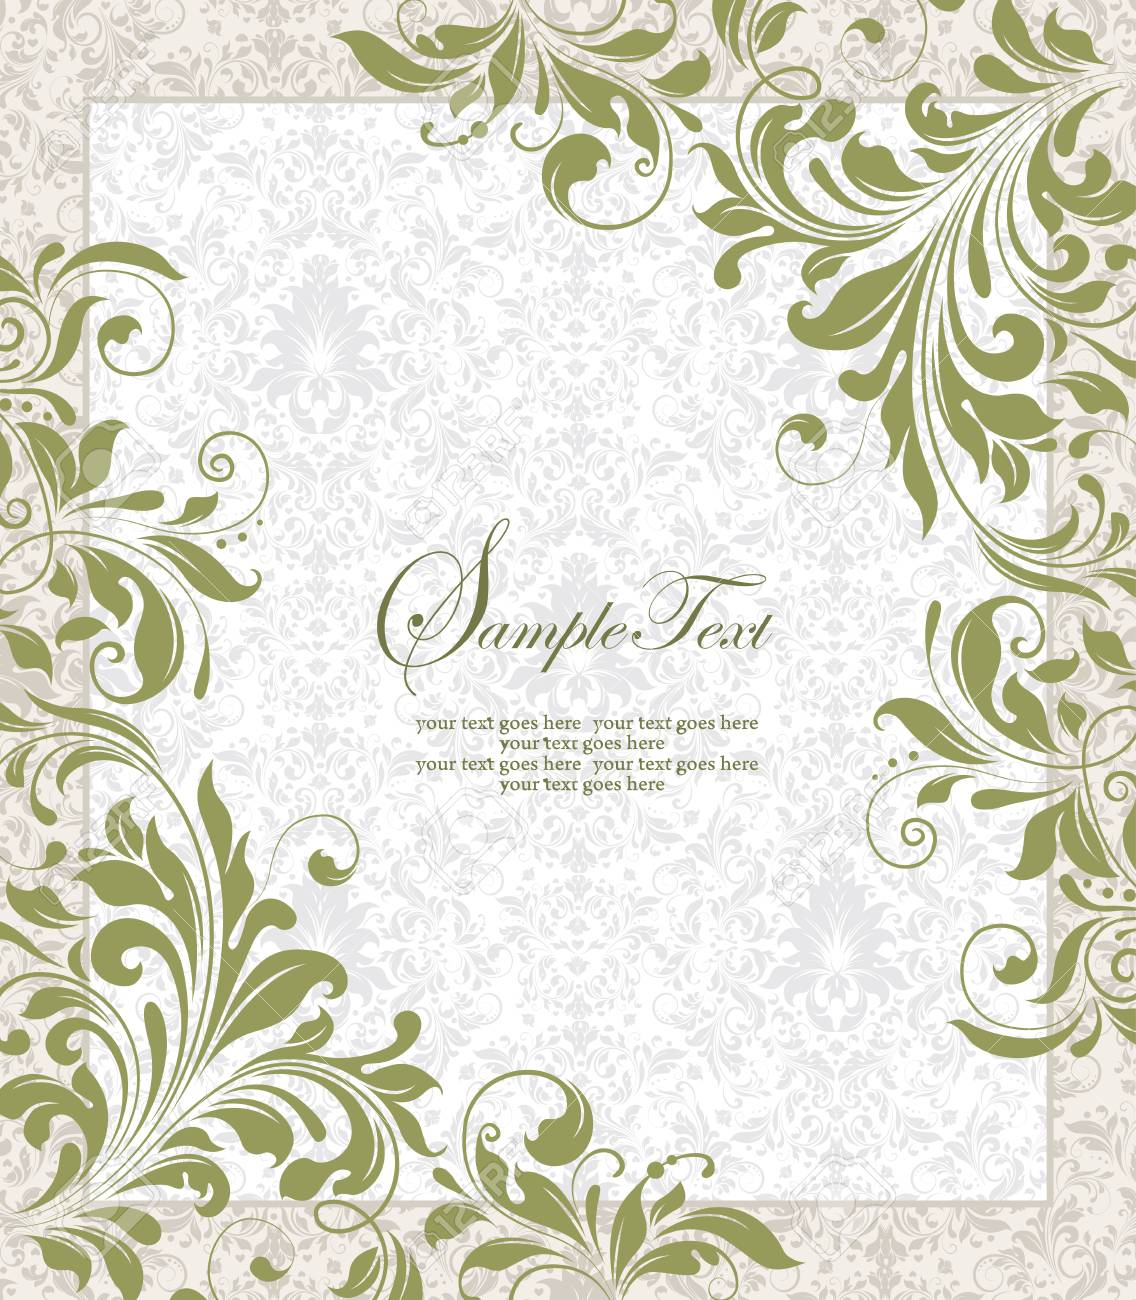 Vintage invitation card with ornate elegant retro abstract floral imagens vintage invitation card with ornate elegant retro abstract floral design olive green flowers and leaves on faded green and white background with stopboris Choice Image